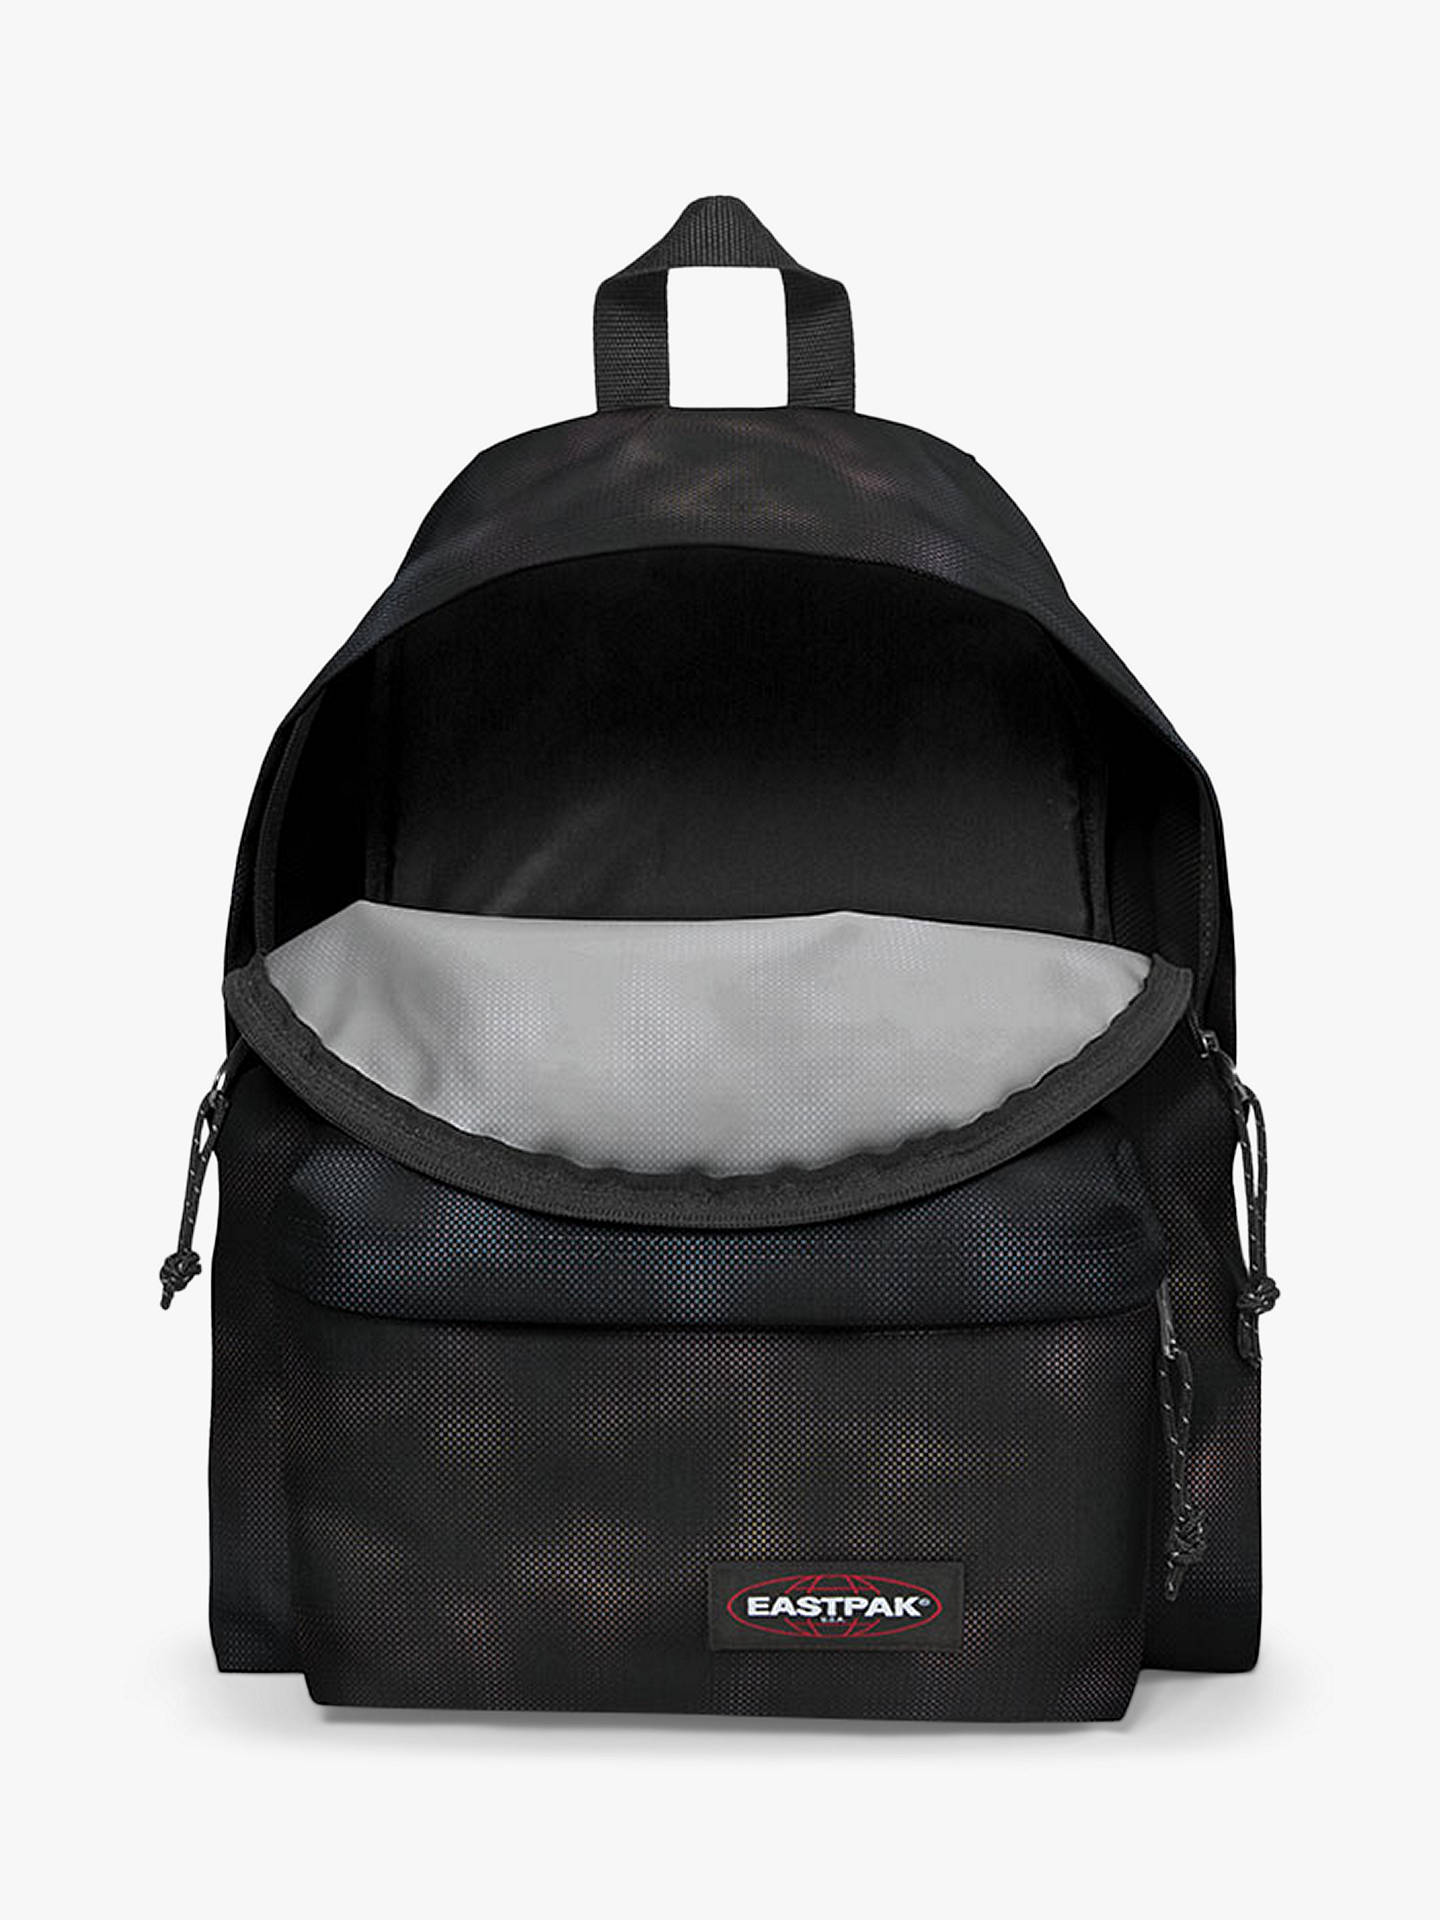 988334c7b Trans Sport Backpacks | The Shred Centre